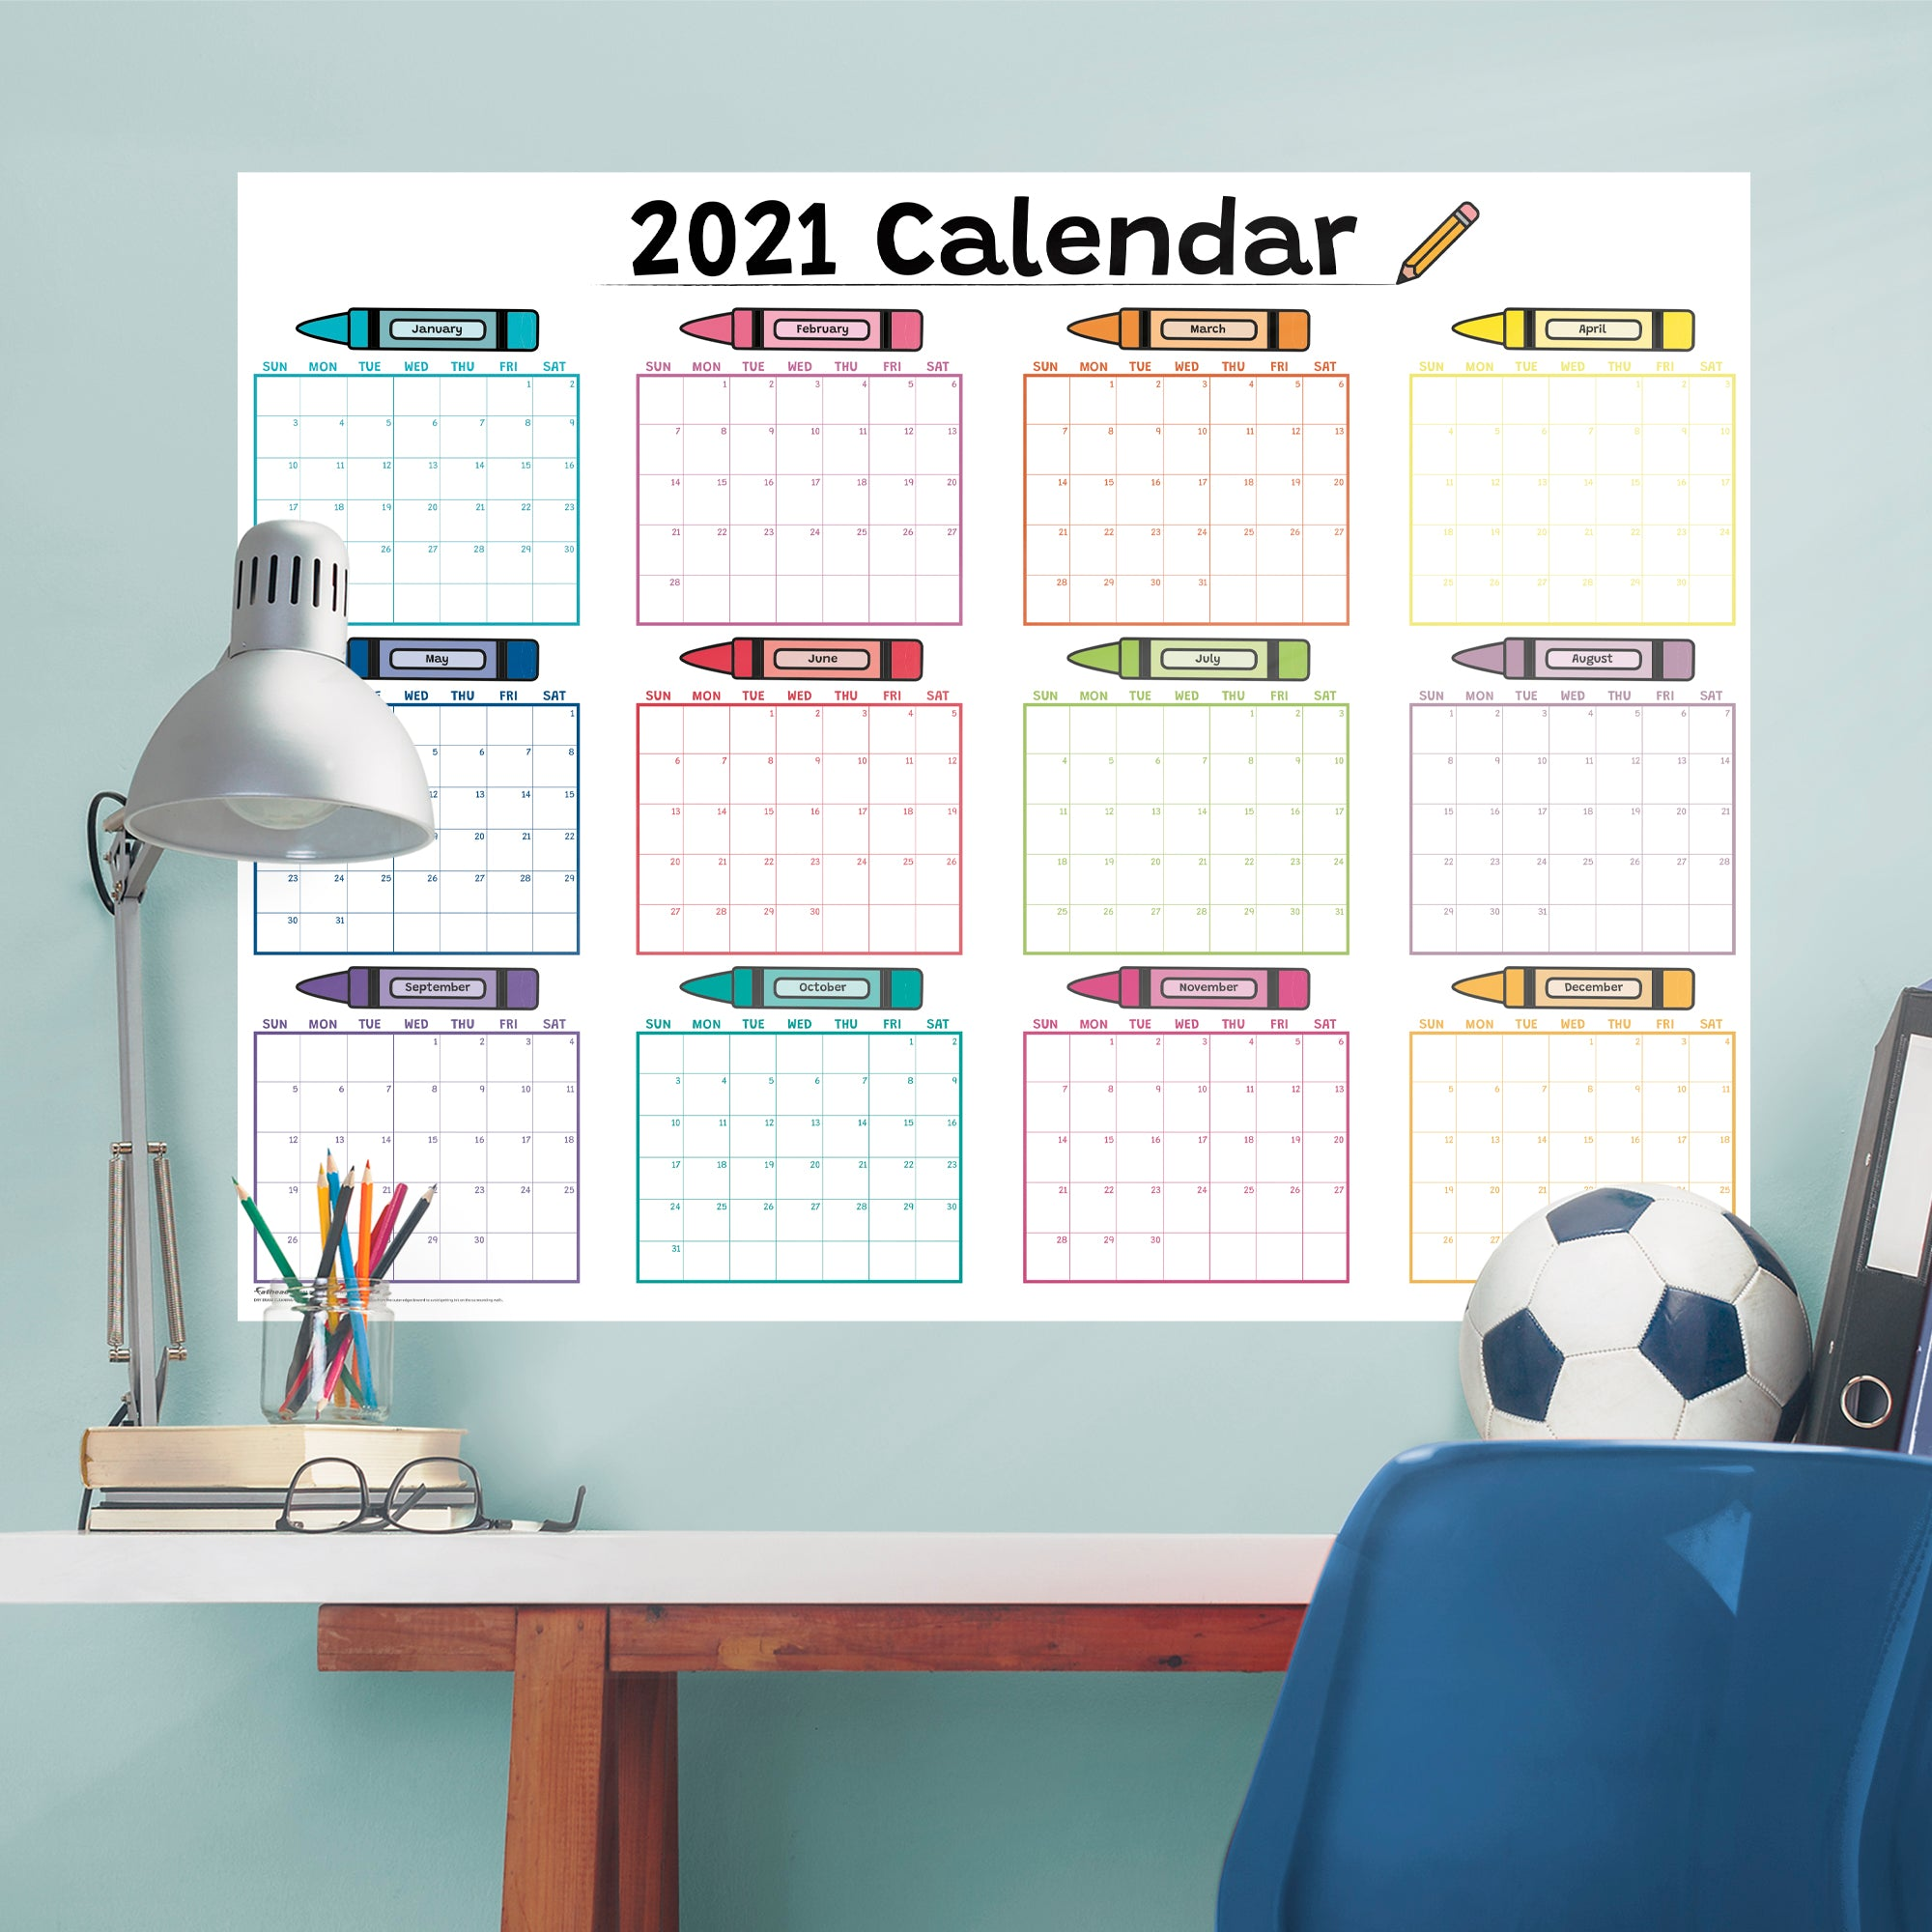 """2021 CRAYON Dry Erase Calendar - Removable Wall Decal Giant Decal ( 54"""" W x 40"""" H) by Fathead   Vinyl"""